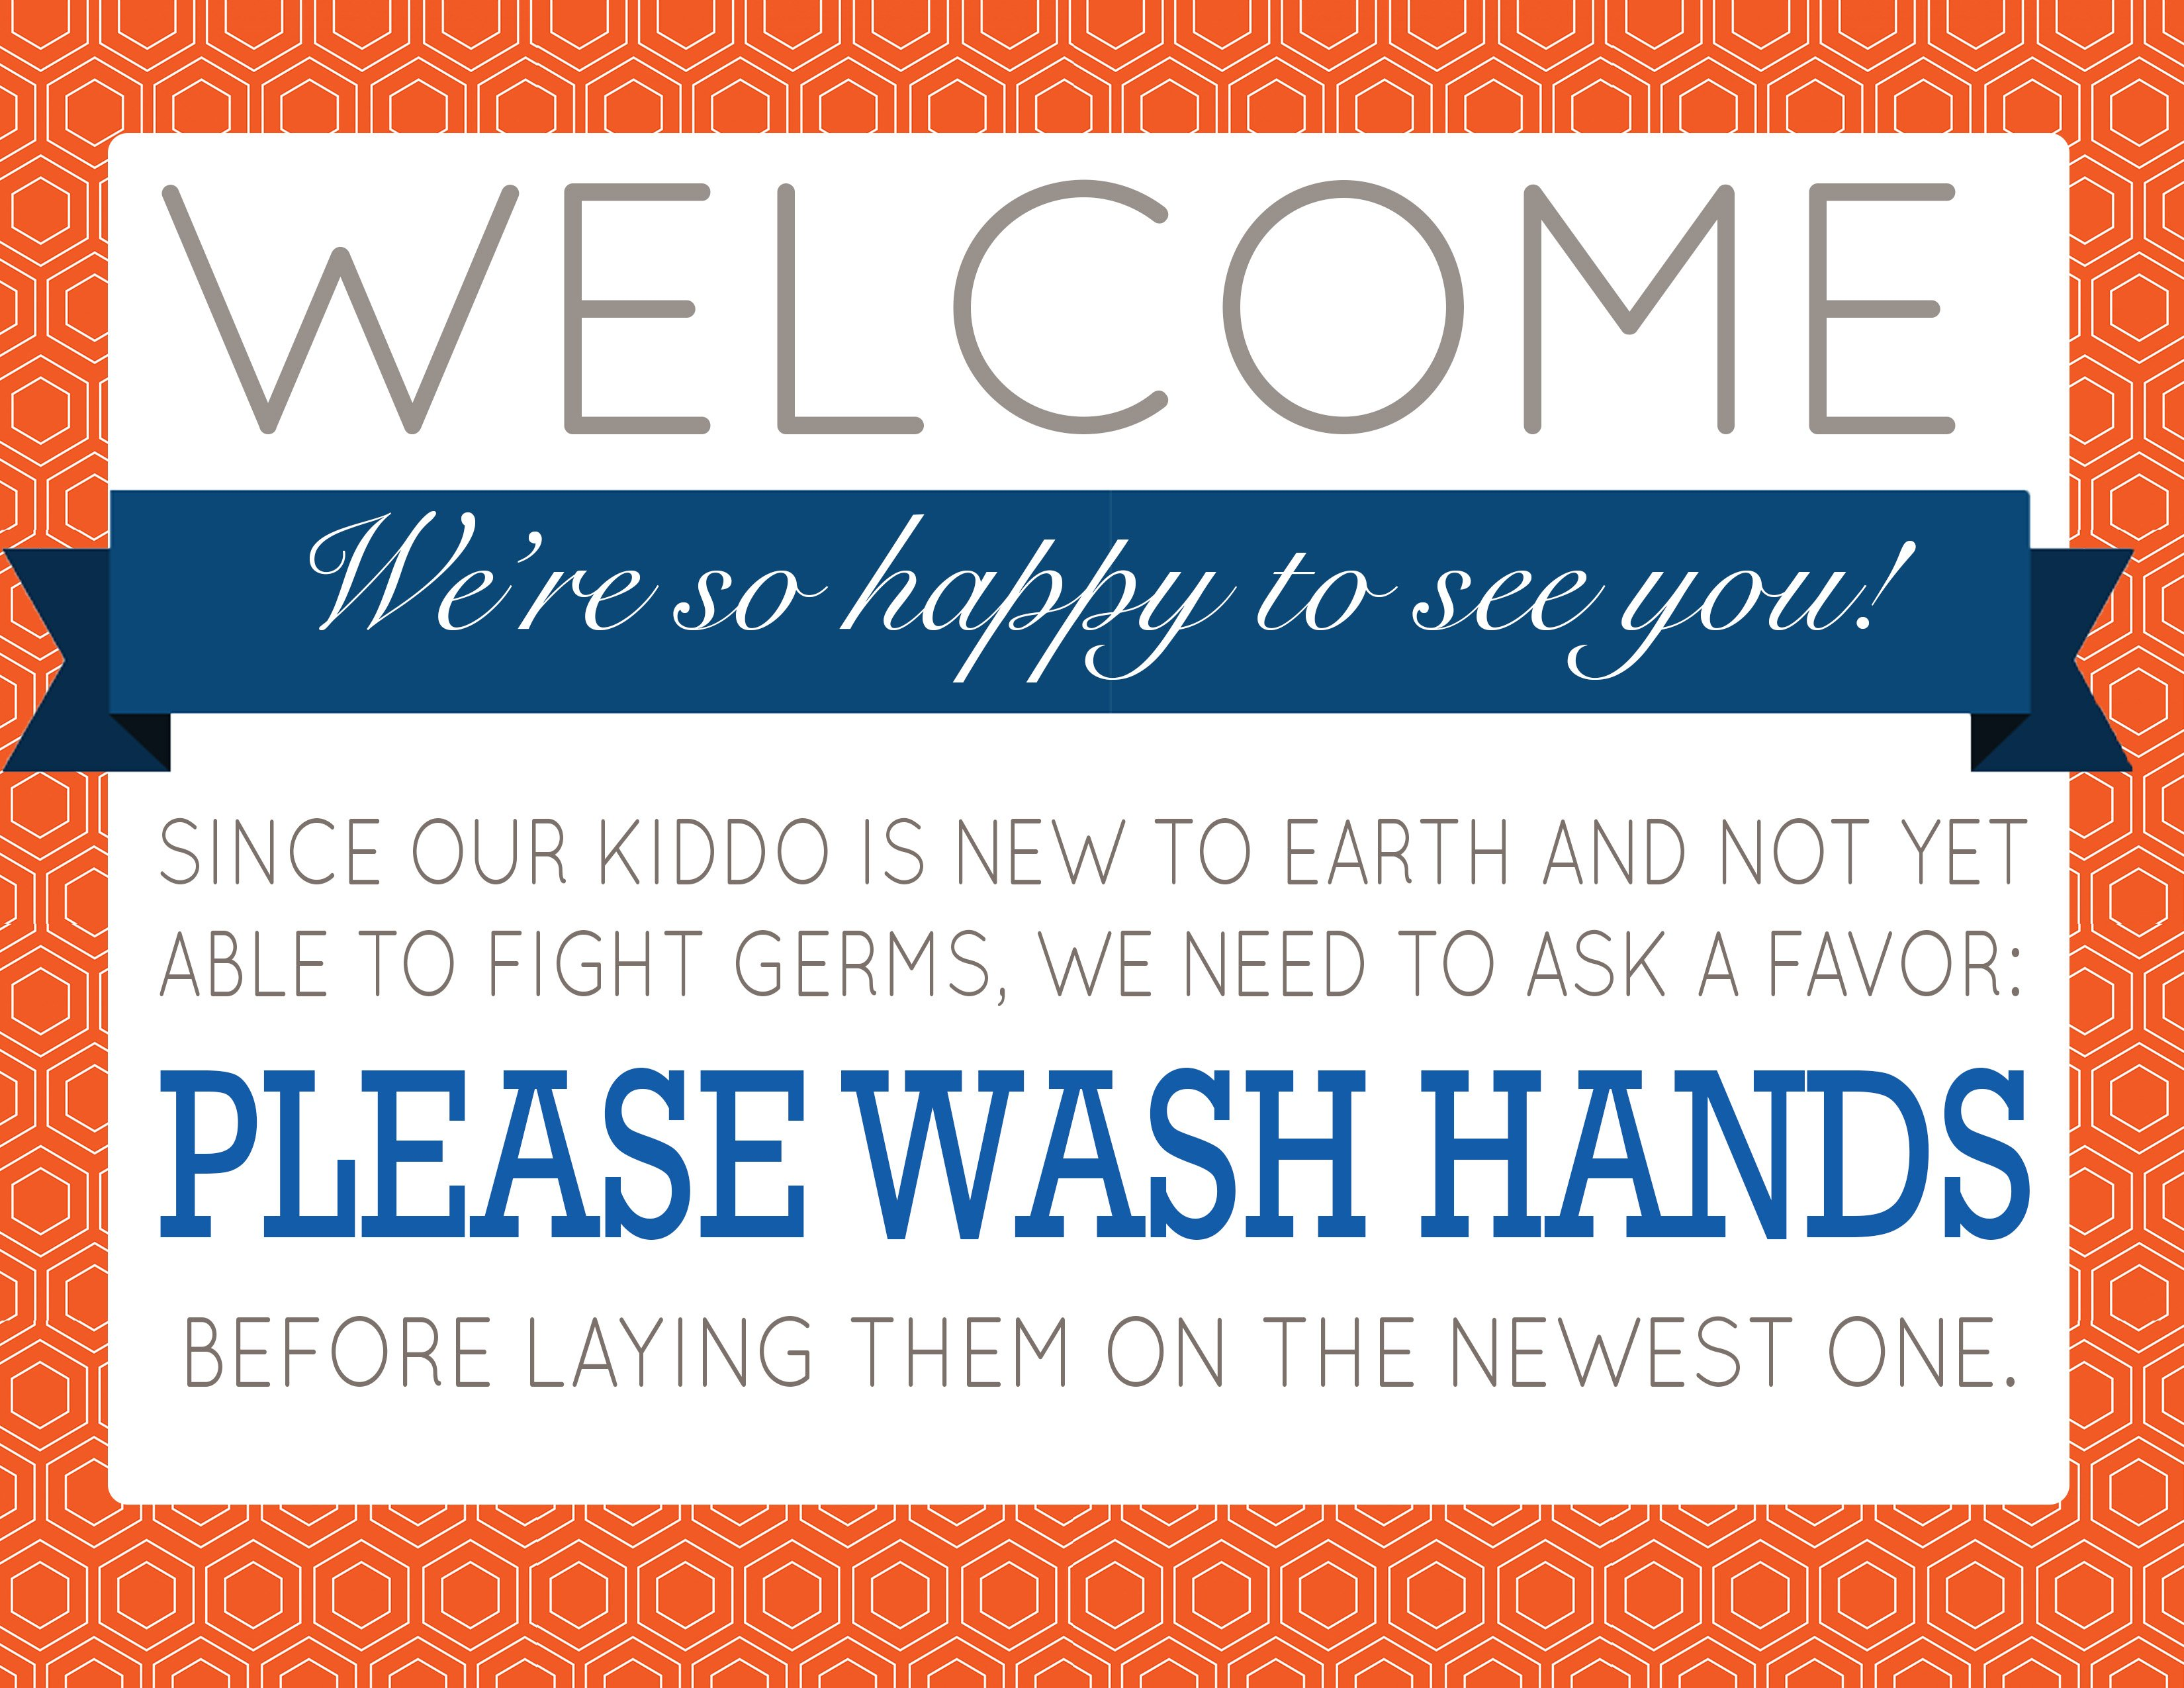 Printable: Signs asking visitors to wash hands — The Bump